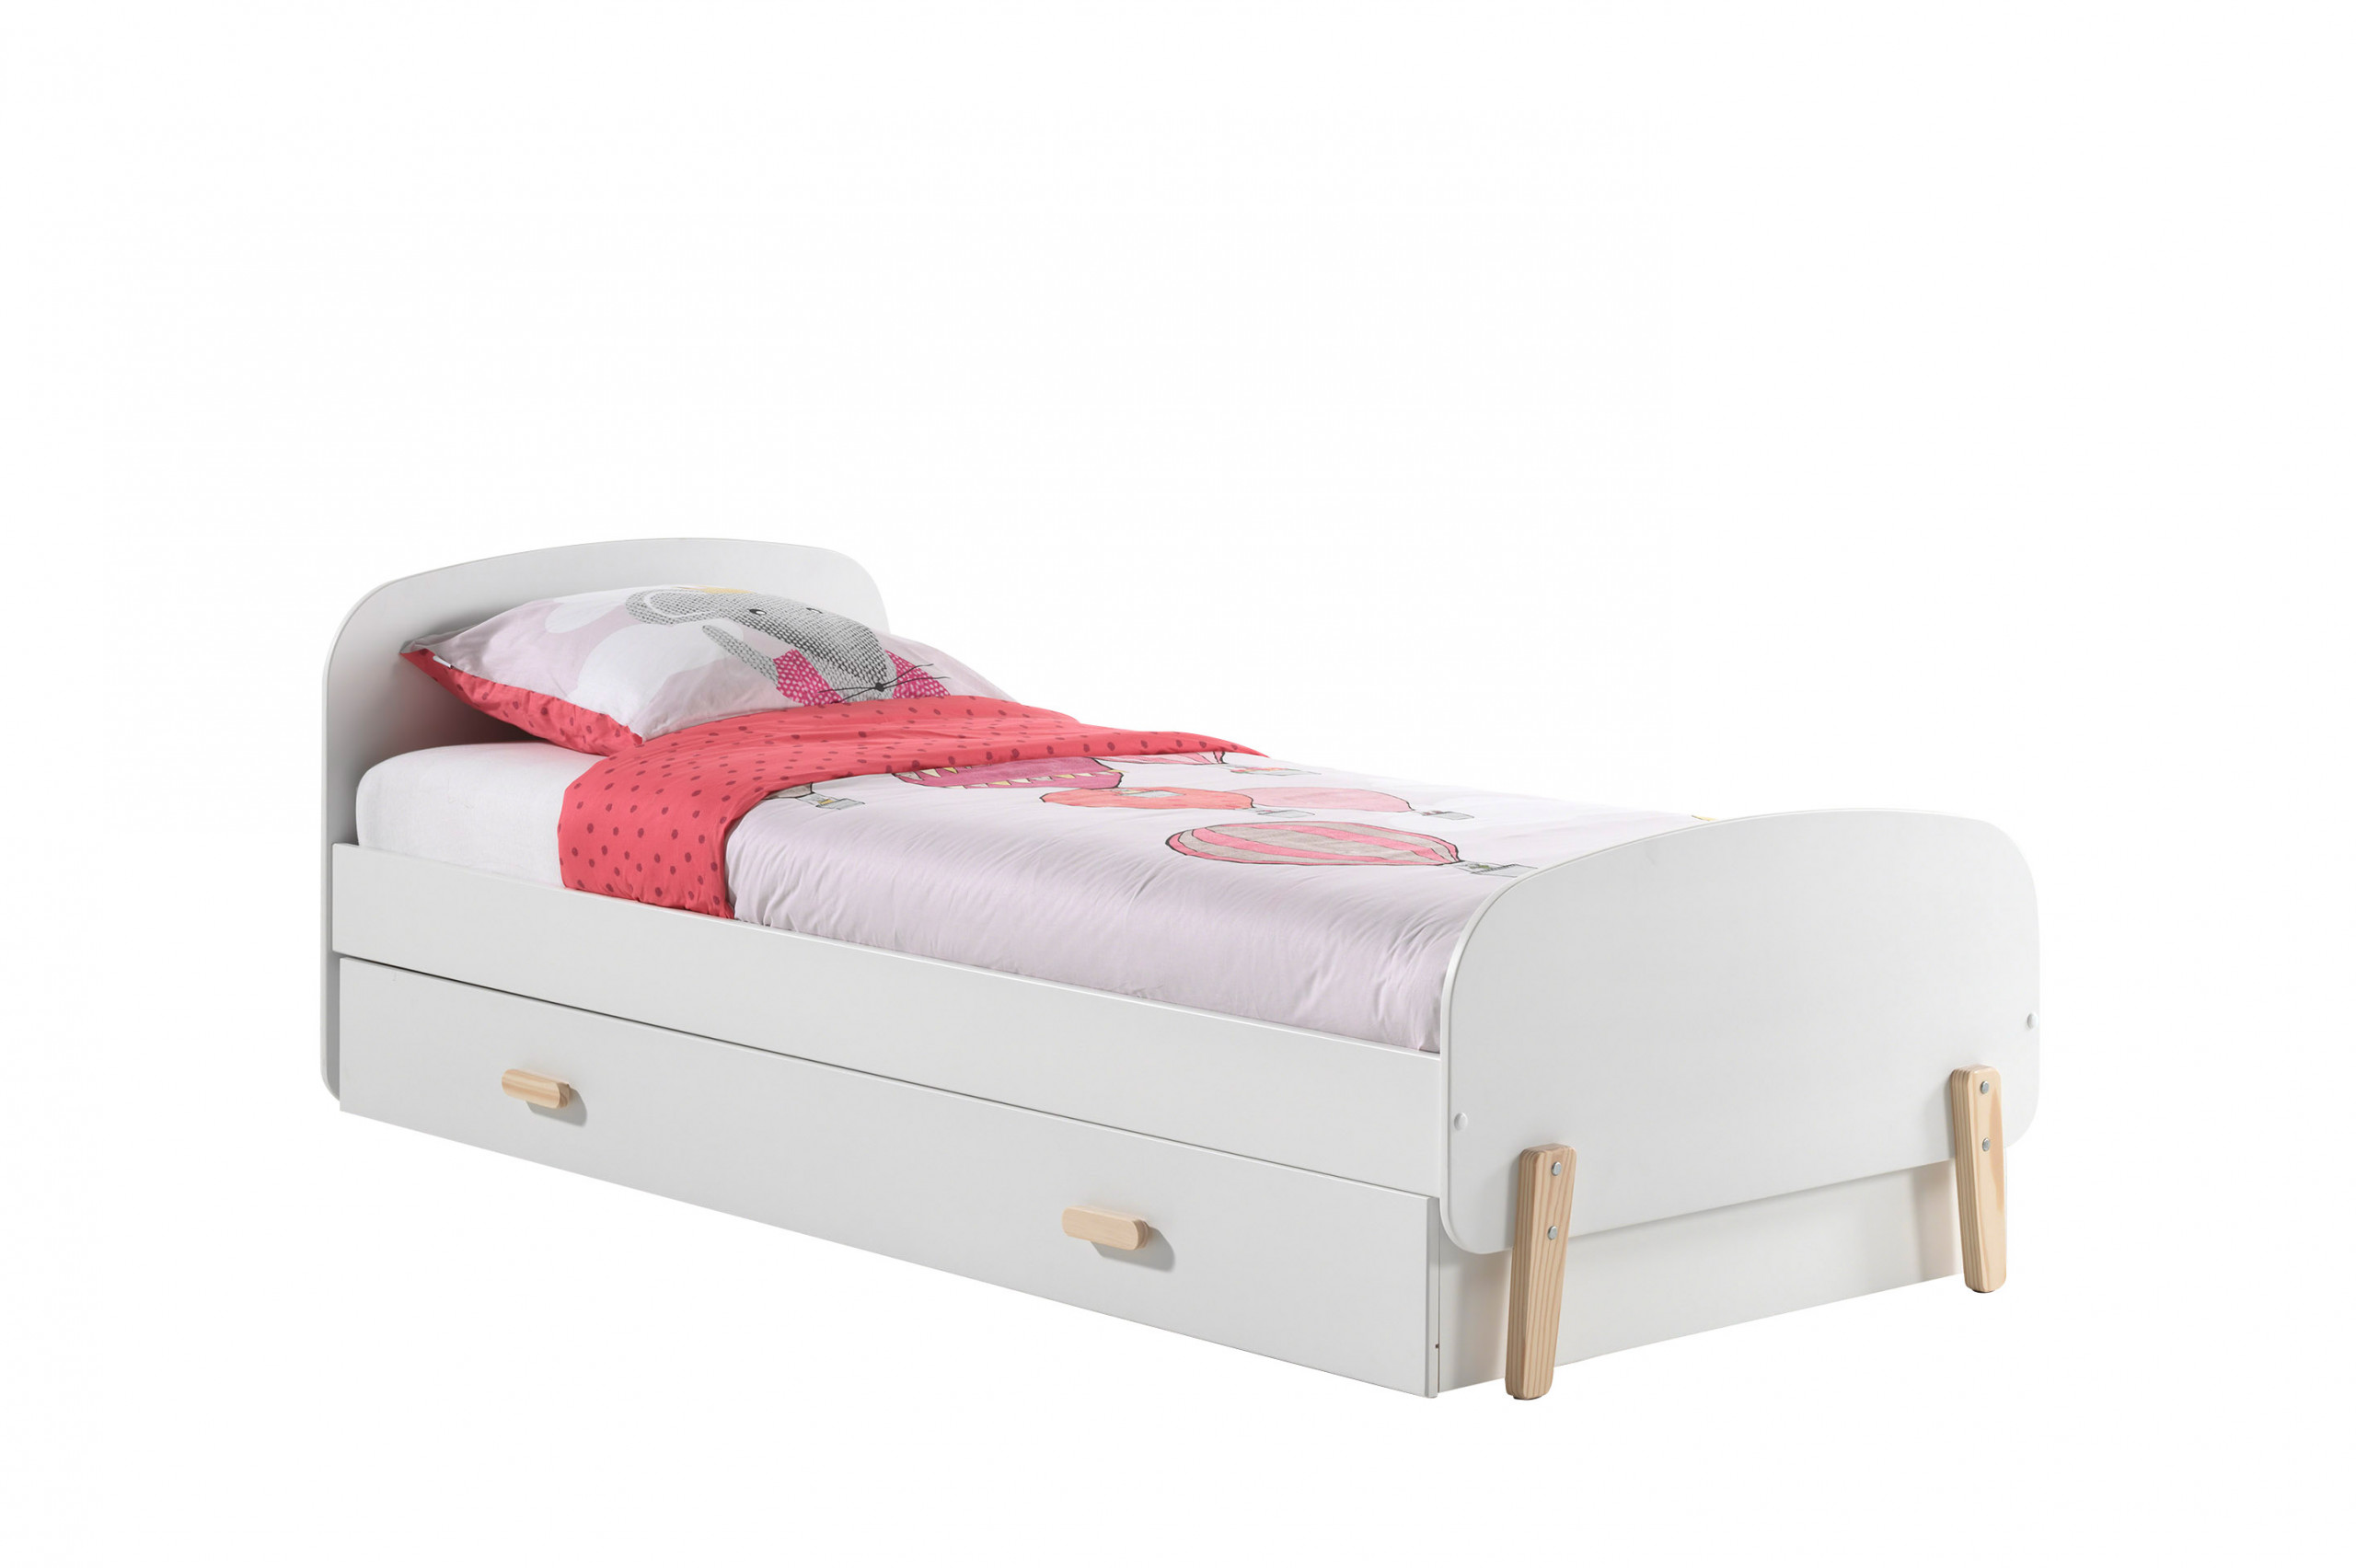 Sherbert SIngle Bed in White with trundle